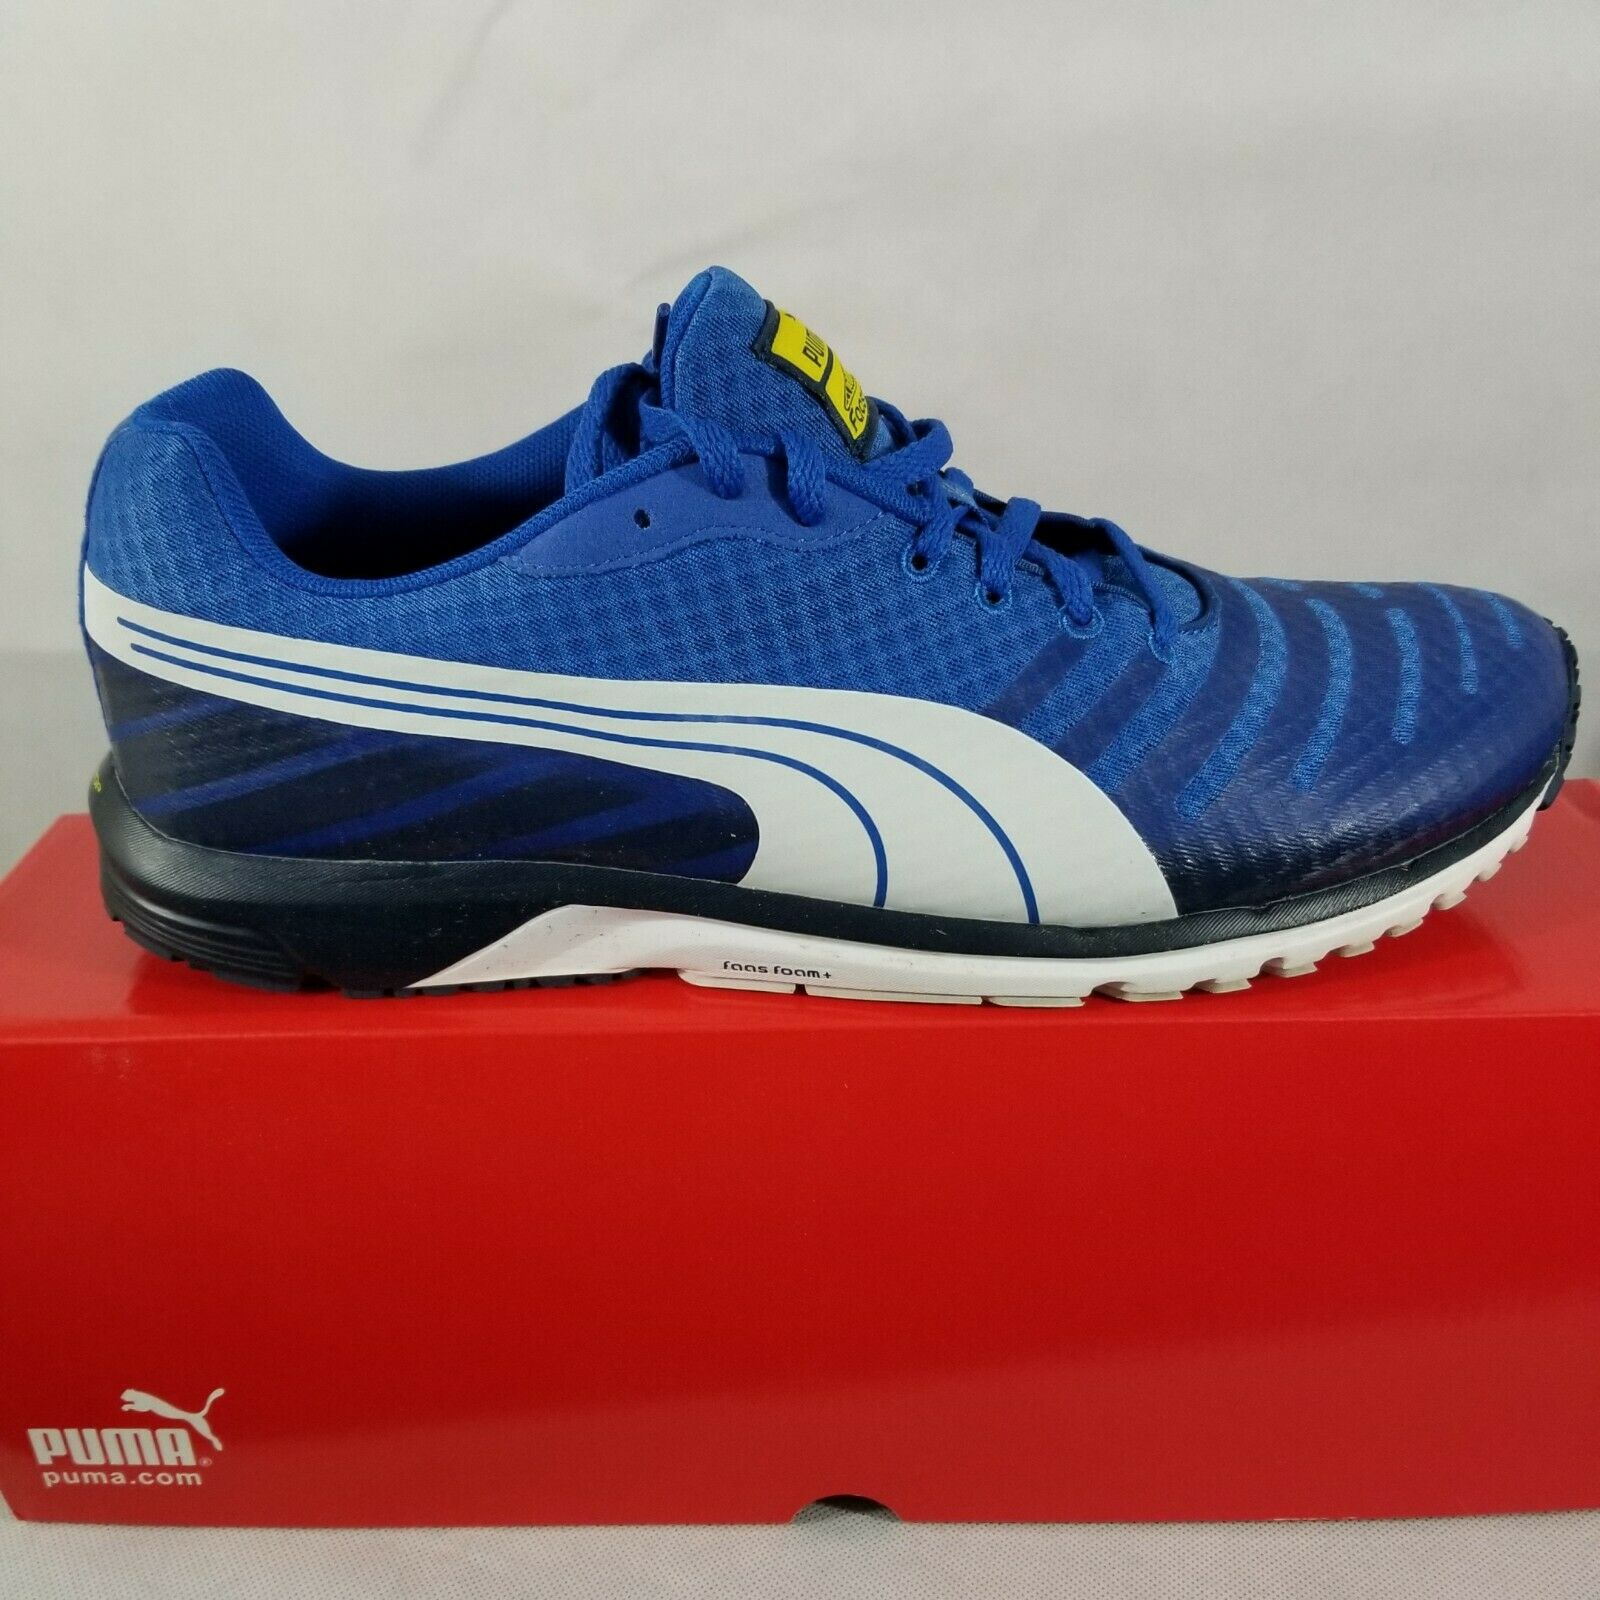 PUMA Men's Faas 300 V3 Running shoes bluee White Vibrant Yellow 187066 12 Size 12M